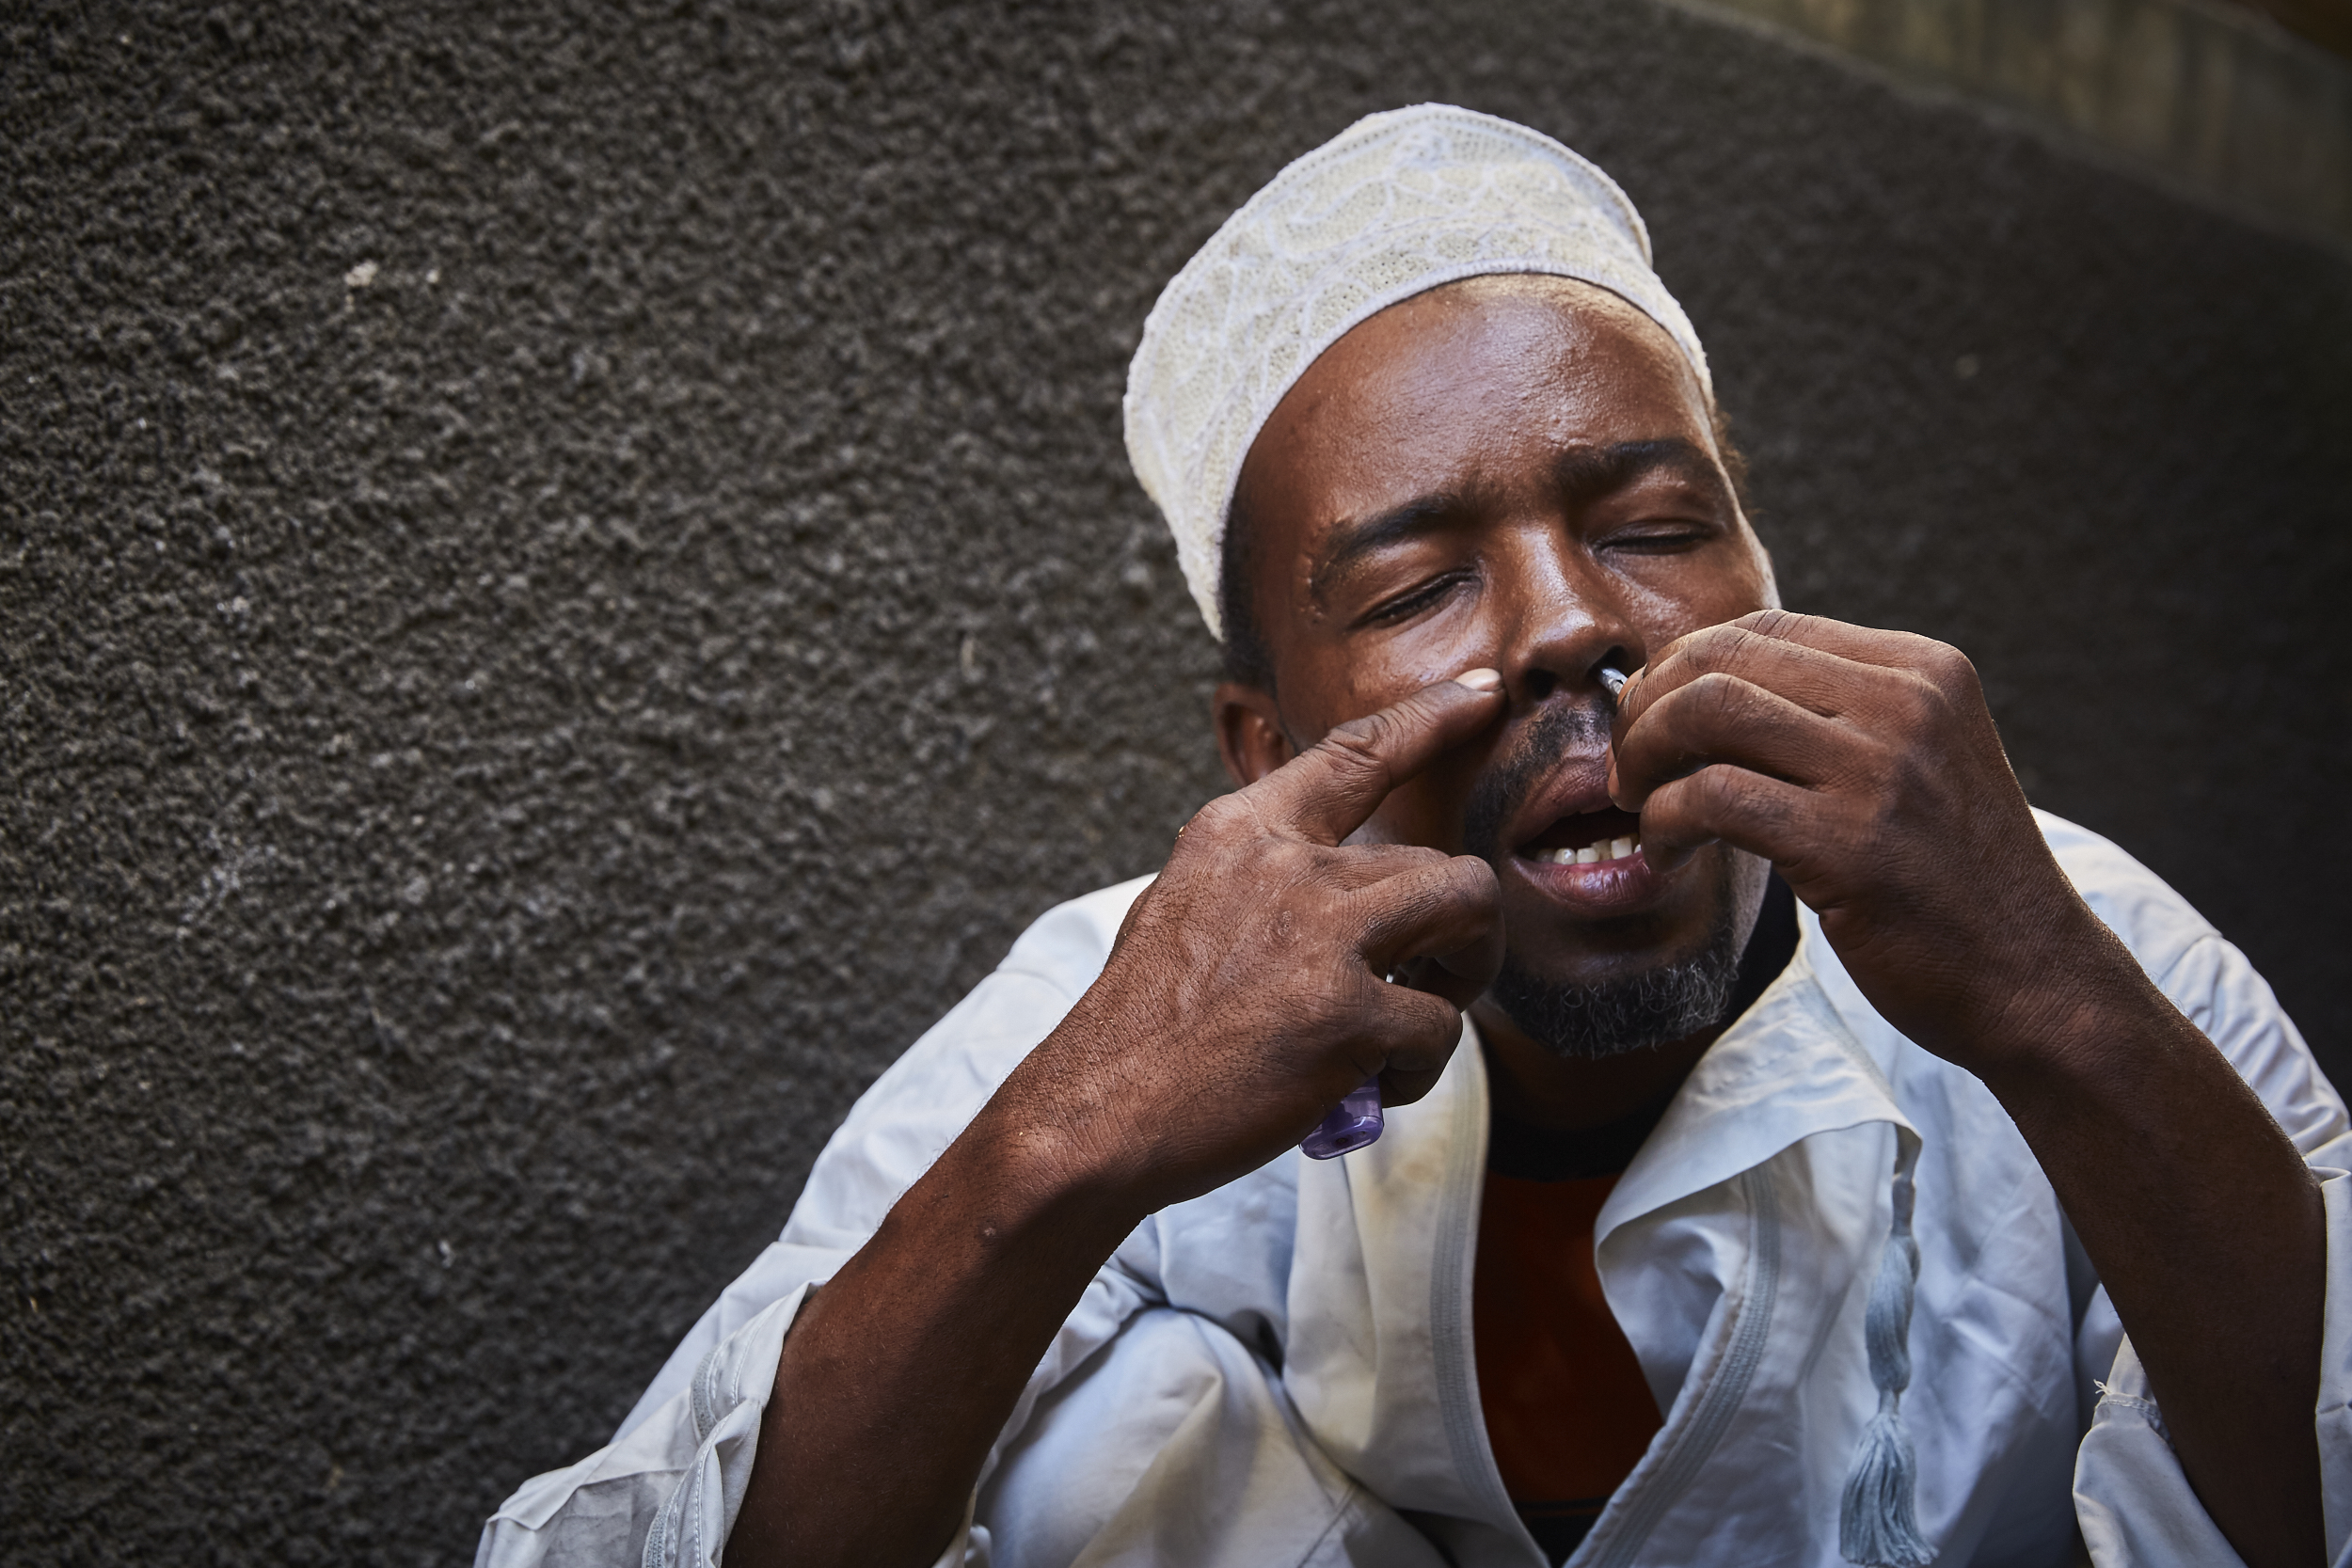 Ali Rajabu, 36years old, prefers to snort the drug. When he started using, he was with good friends. He thought they were going outside to smoke cigarettes but they instead handed him a pipe with  unga  (heroin).  Ali is wearing the traditional Kanzu that men wear before praying at mosque. He wears it to pay respect during Ramadhan, but has not fasted though it is a requirement for Muslims.